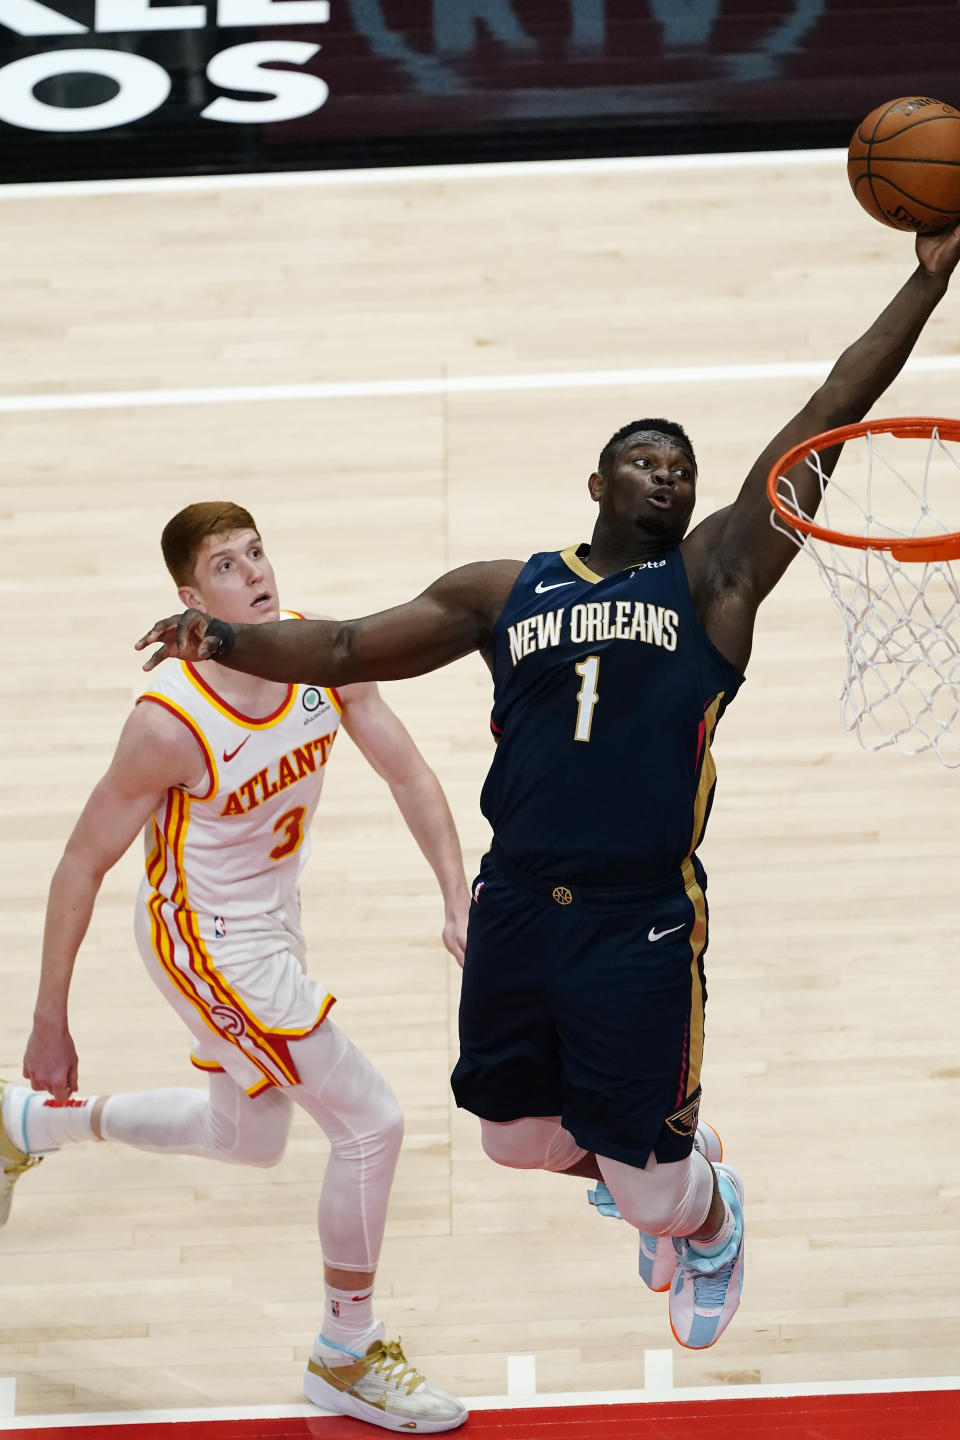 New Orleans Pelicans forward Zion Williamson (1) scores as Atlanta Hawks guard Kevin Huerter (3) defends in the first half of an NBA basketball game Tuesday, April 6, 2021, in Atlanta. (AP Photo/John Bazemore)